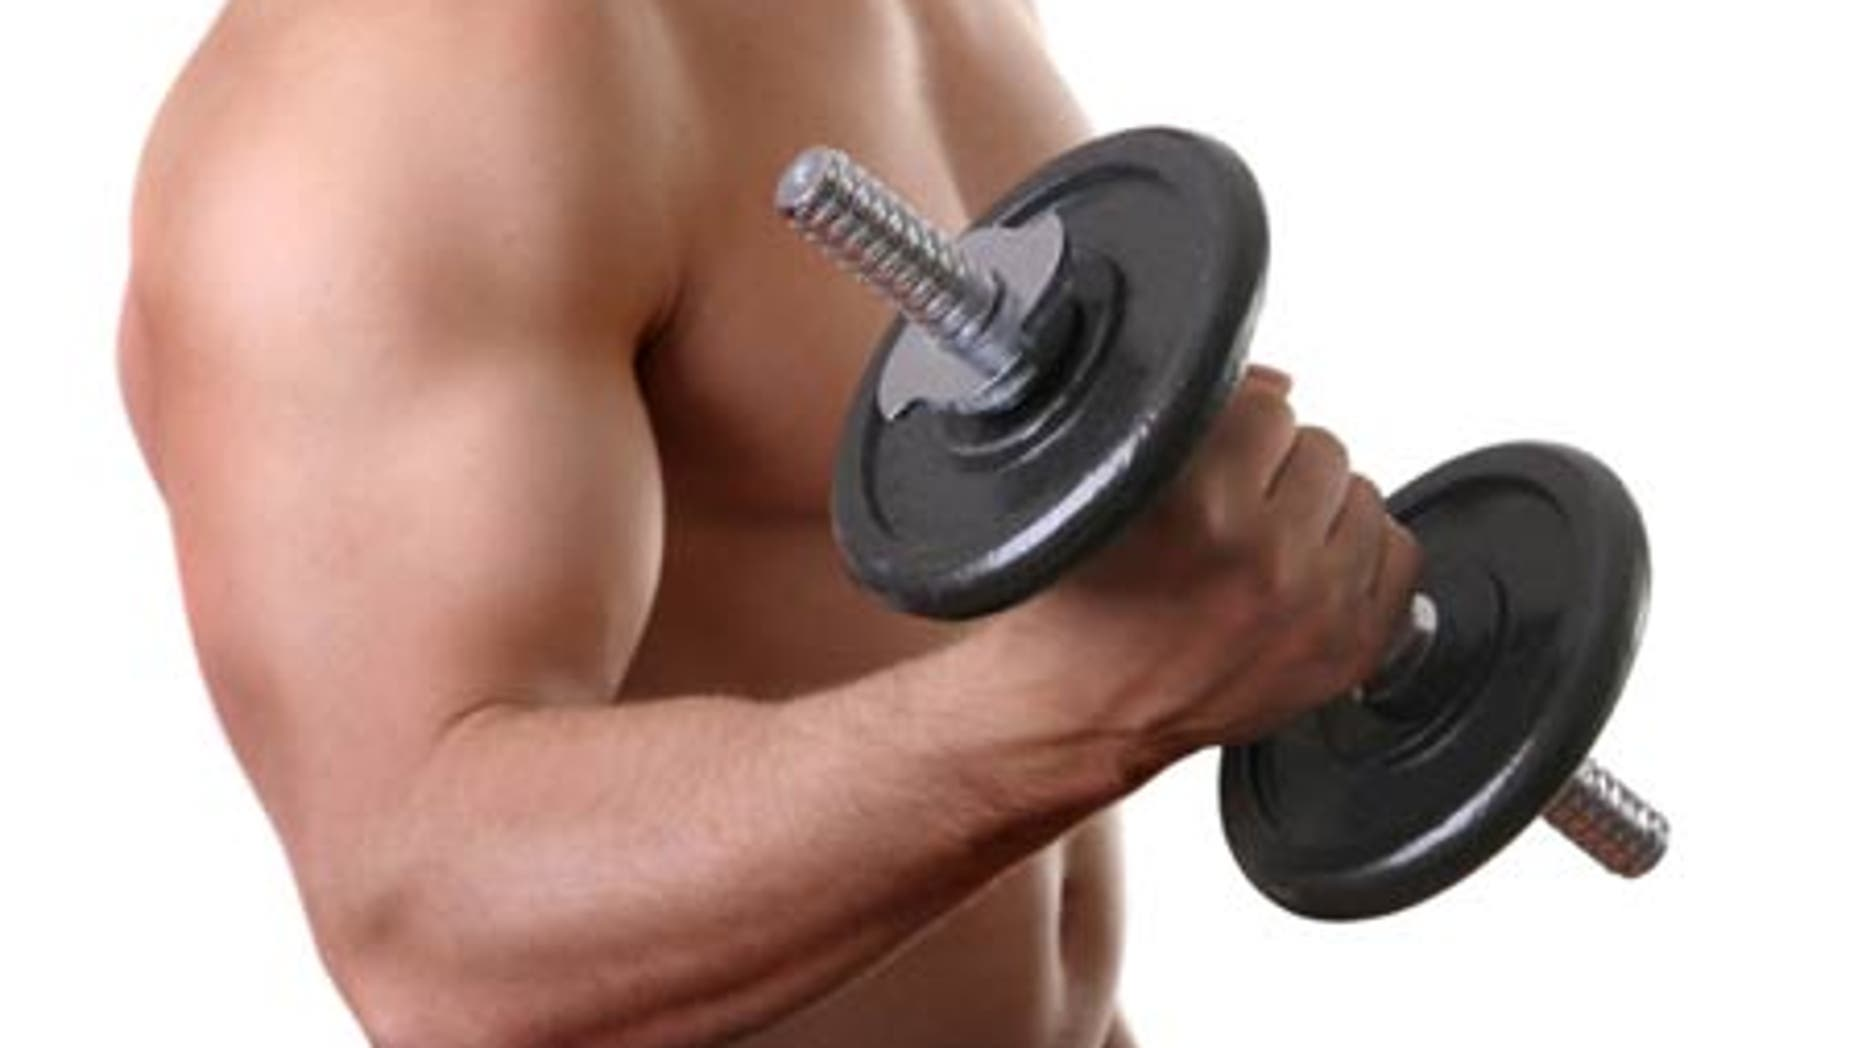 Weight lifting can actually prove to be a very effective method for losing weight, provided you go about it in the right manner.